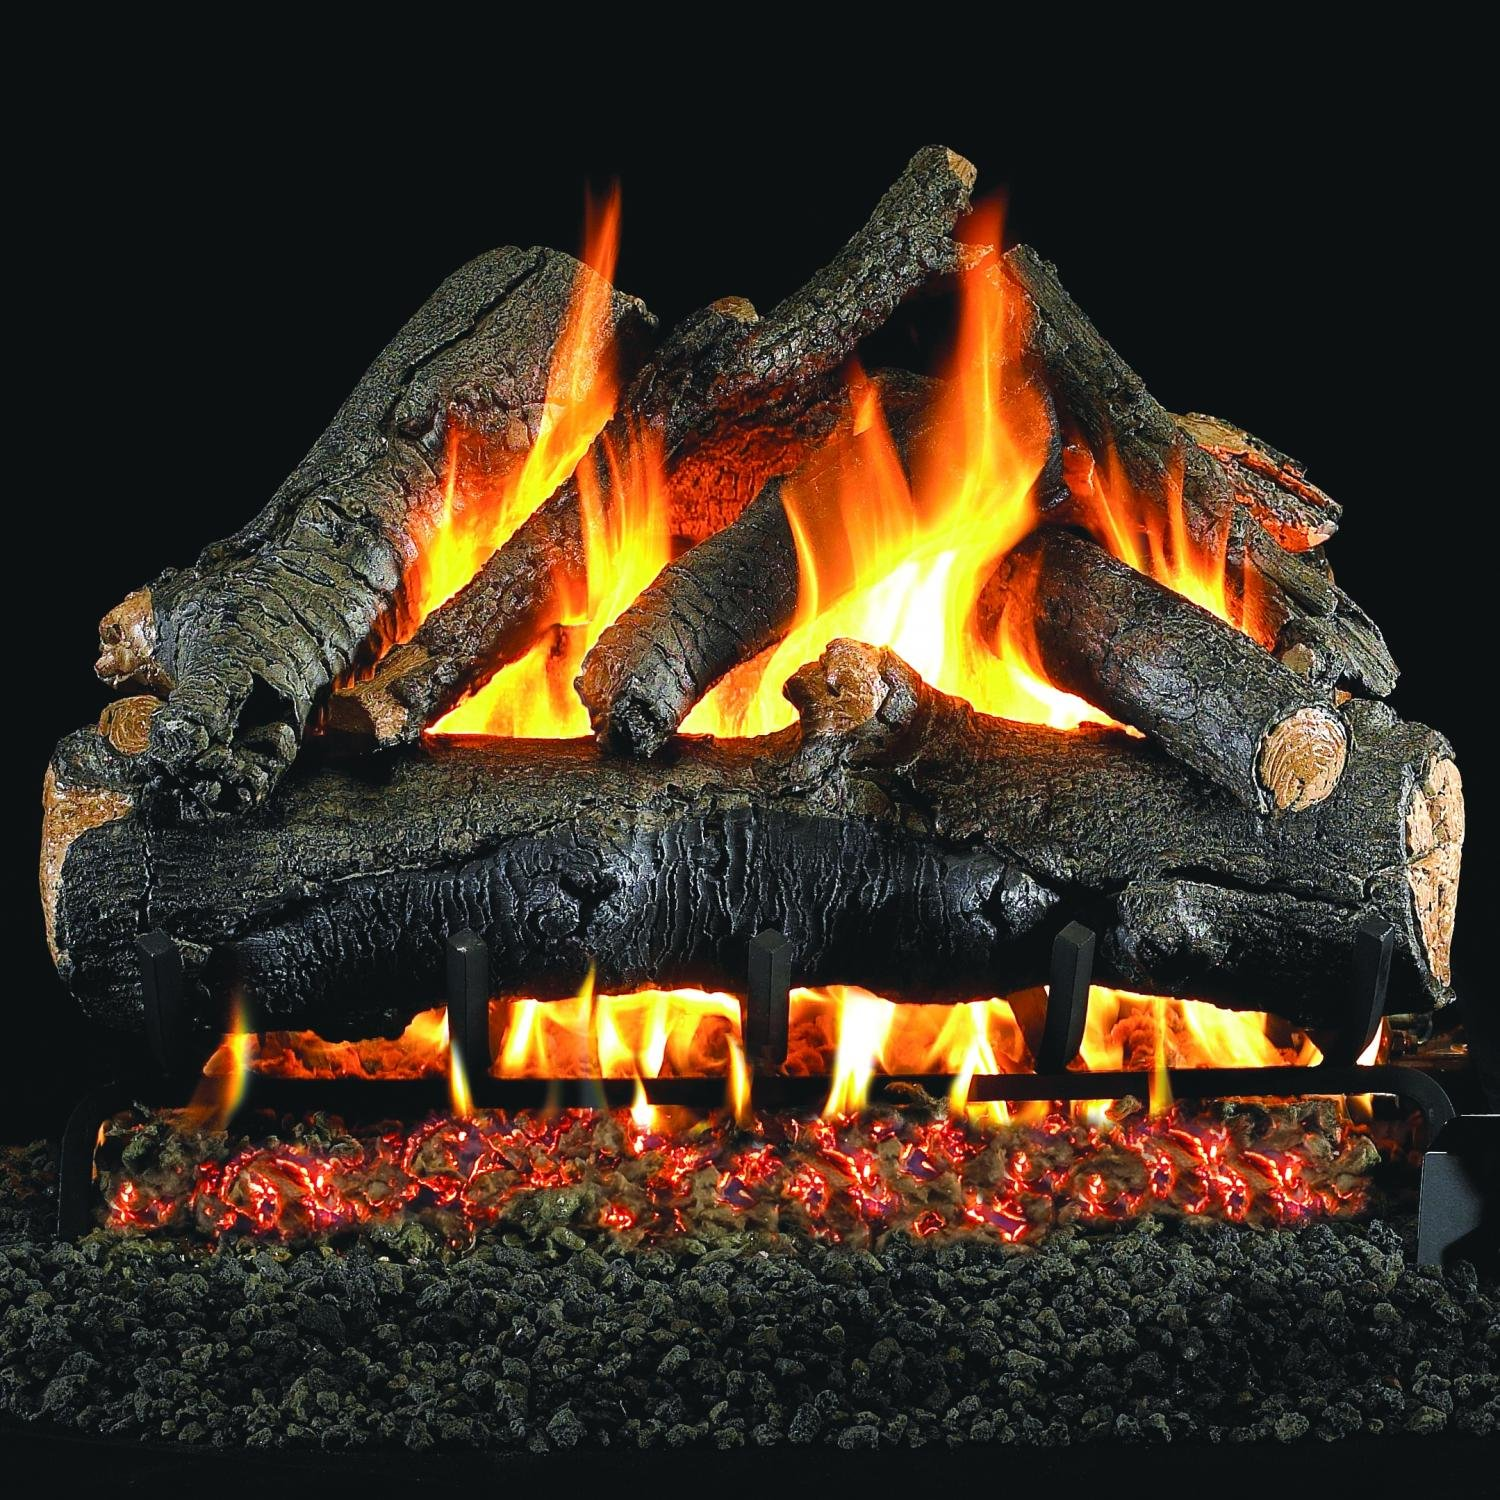 Peterson Real Fyre 18-inch American Oak Gas Log Set With Vented Natural Gas Ansi Certified G46 Burner - Variable Flame Remote by Peterson Real Fyre